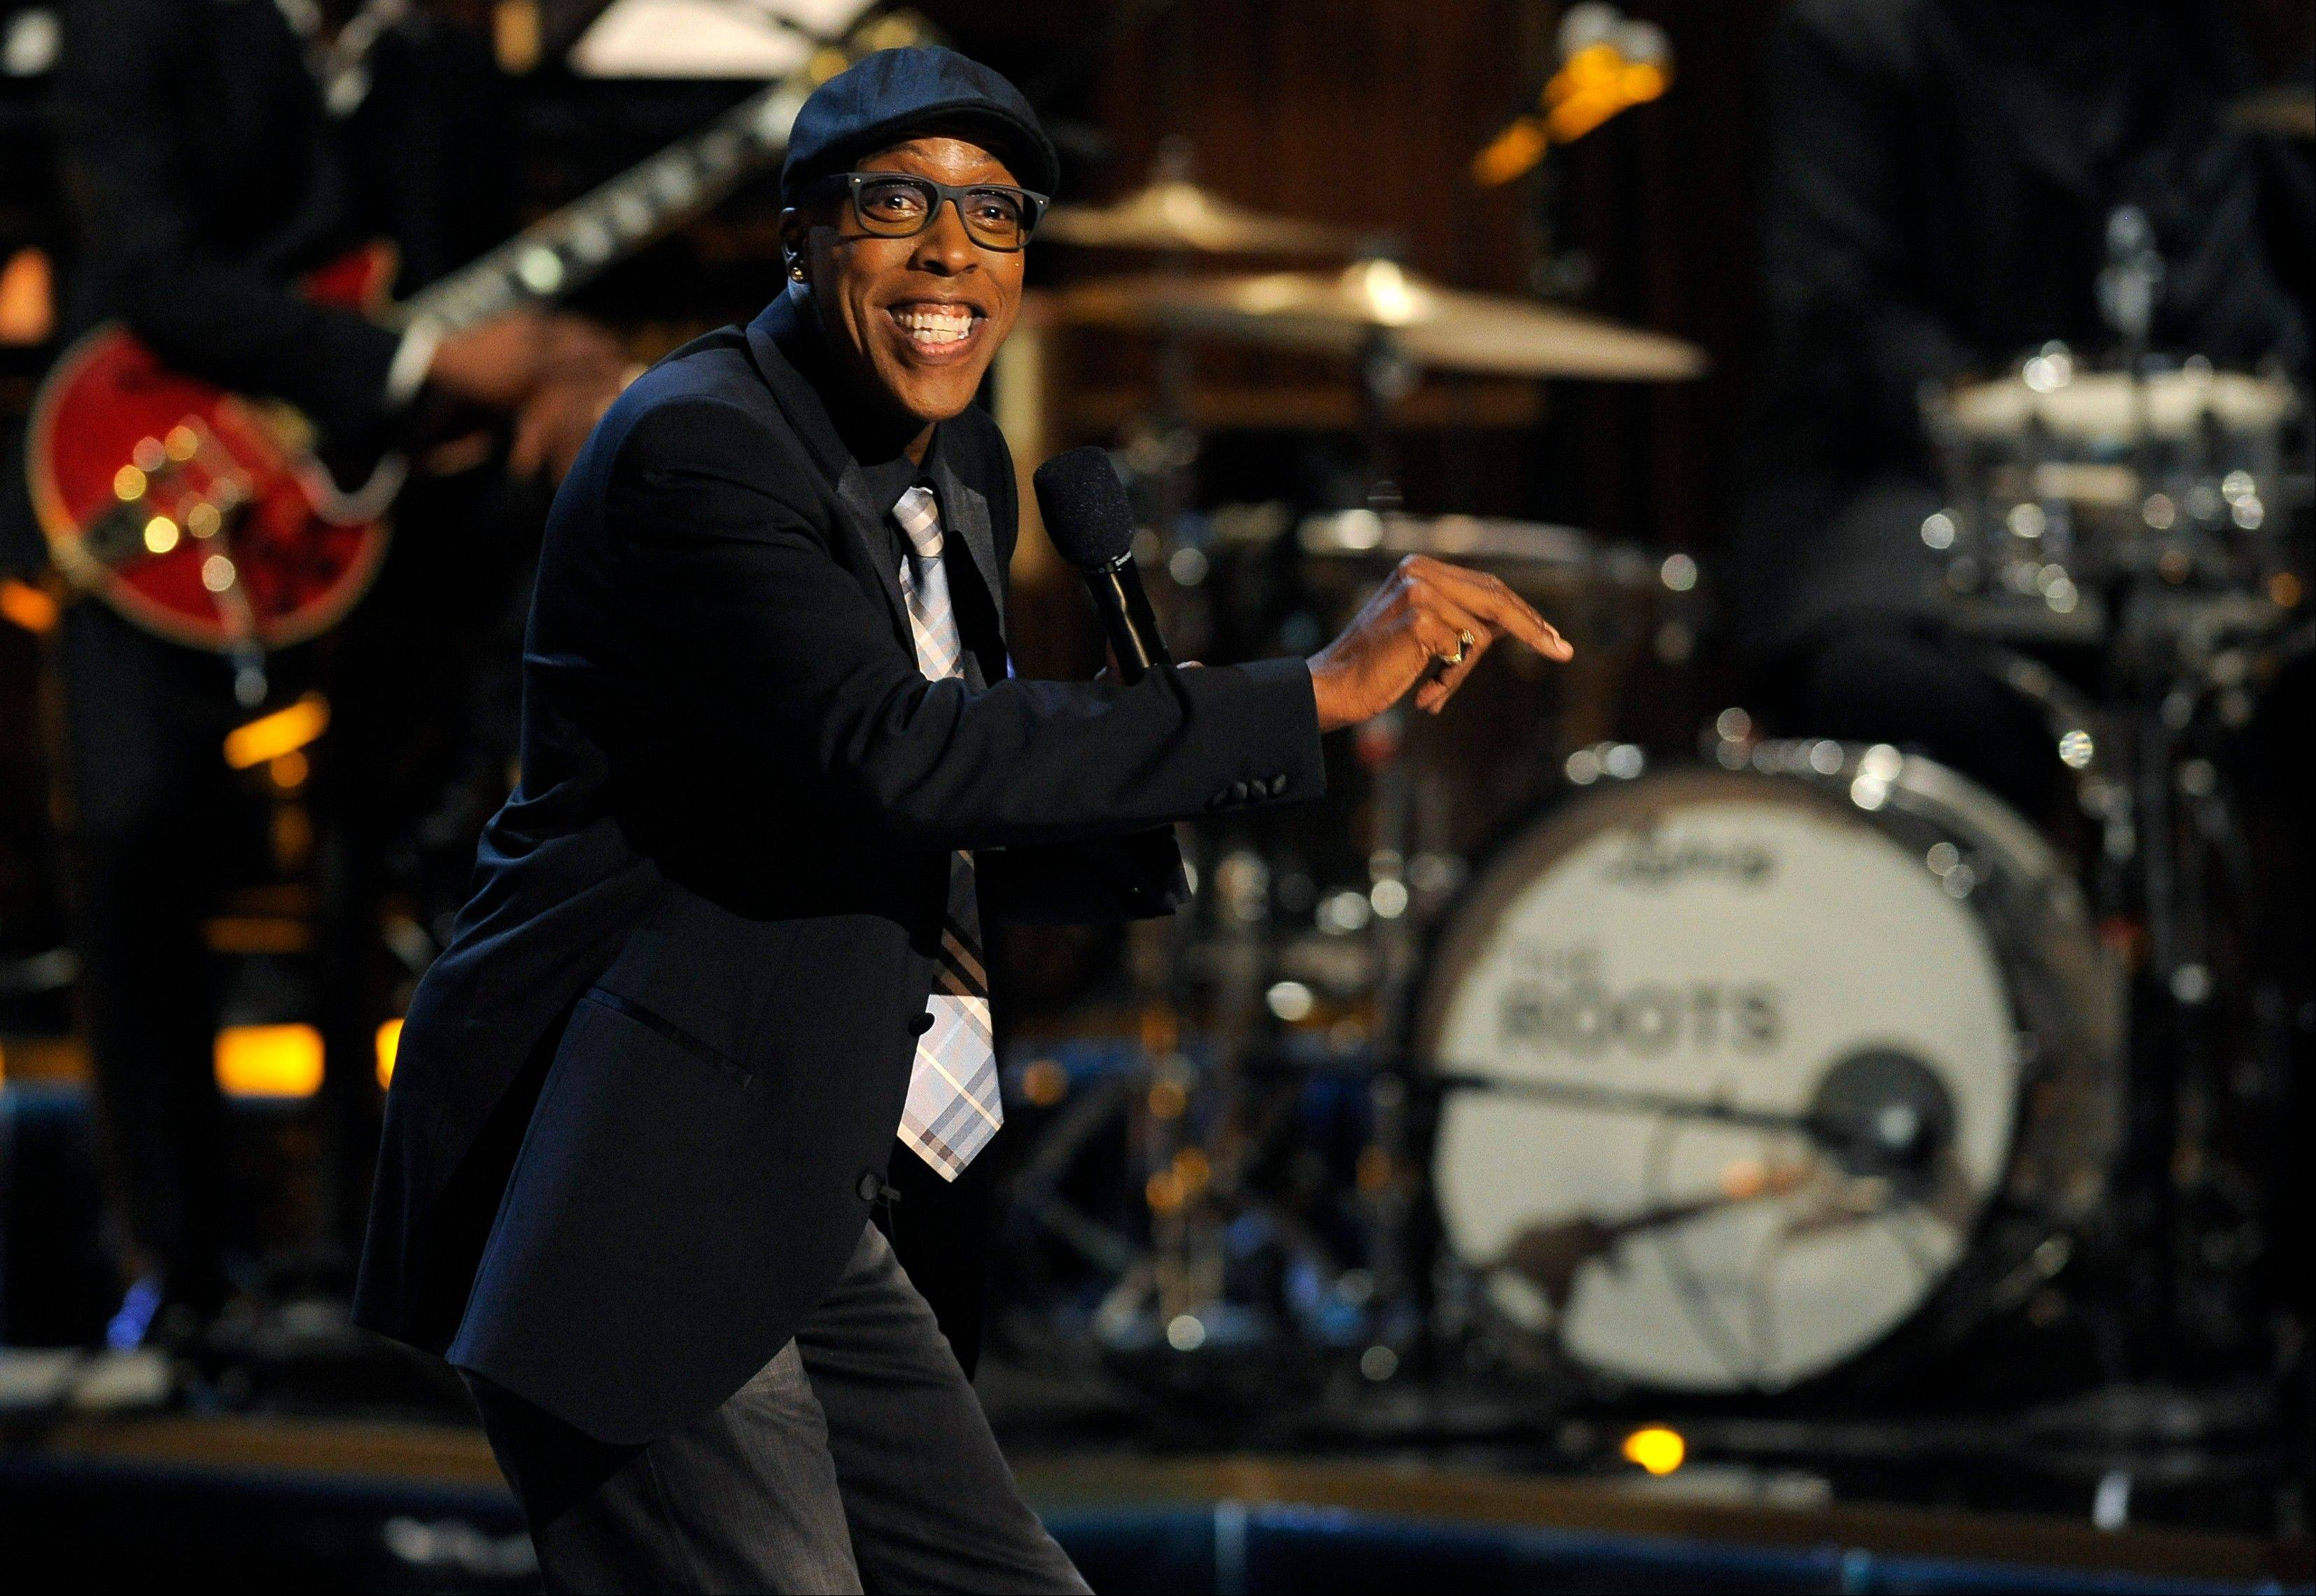 After two decades, Arsenio Hall is returning to late-night television with �The Arsenio Hall Show.�